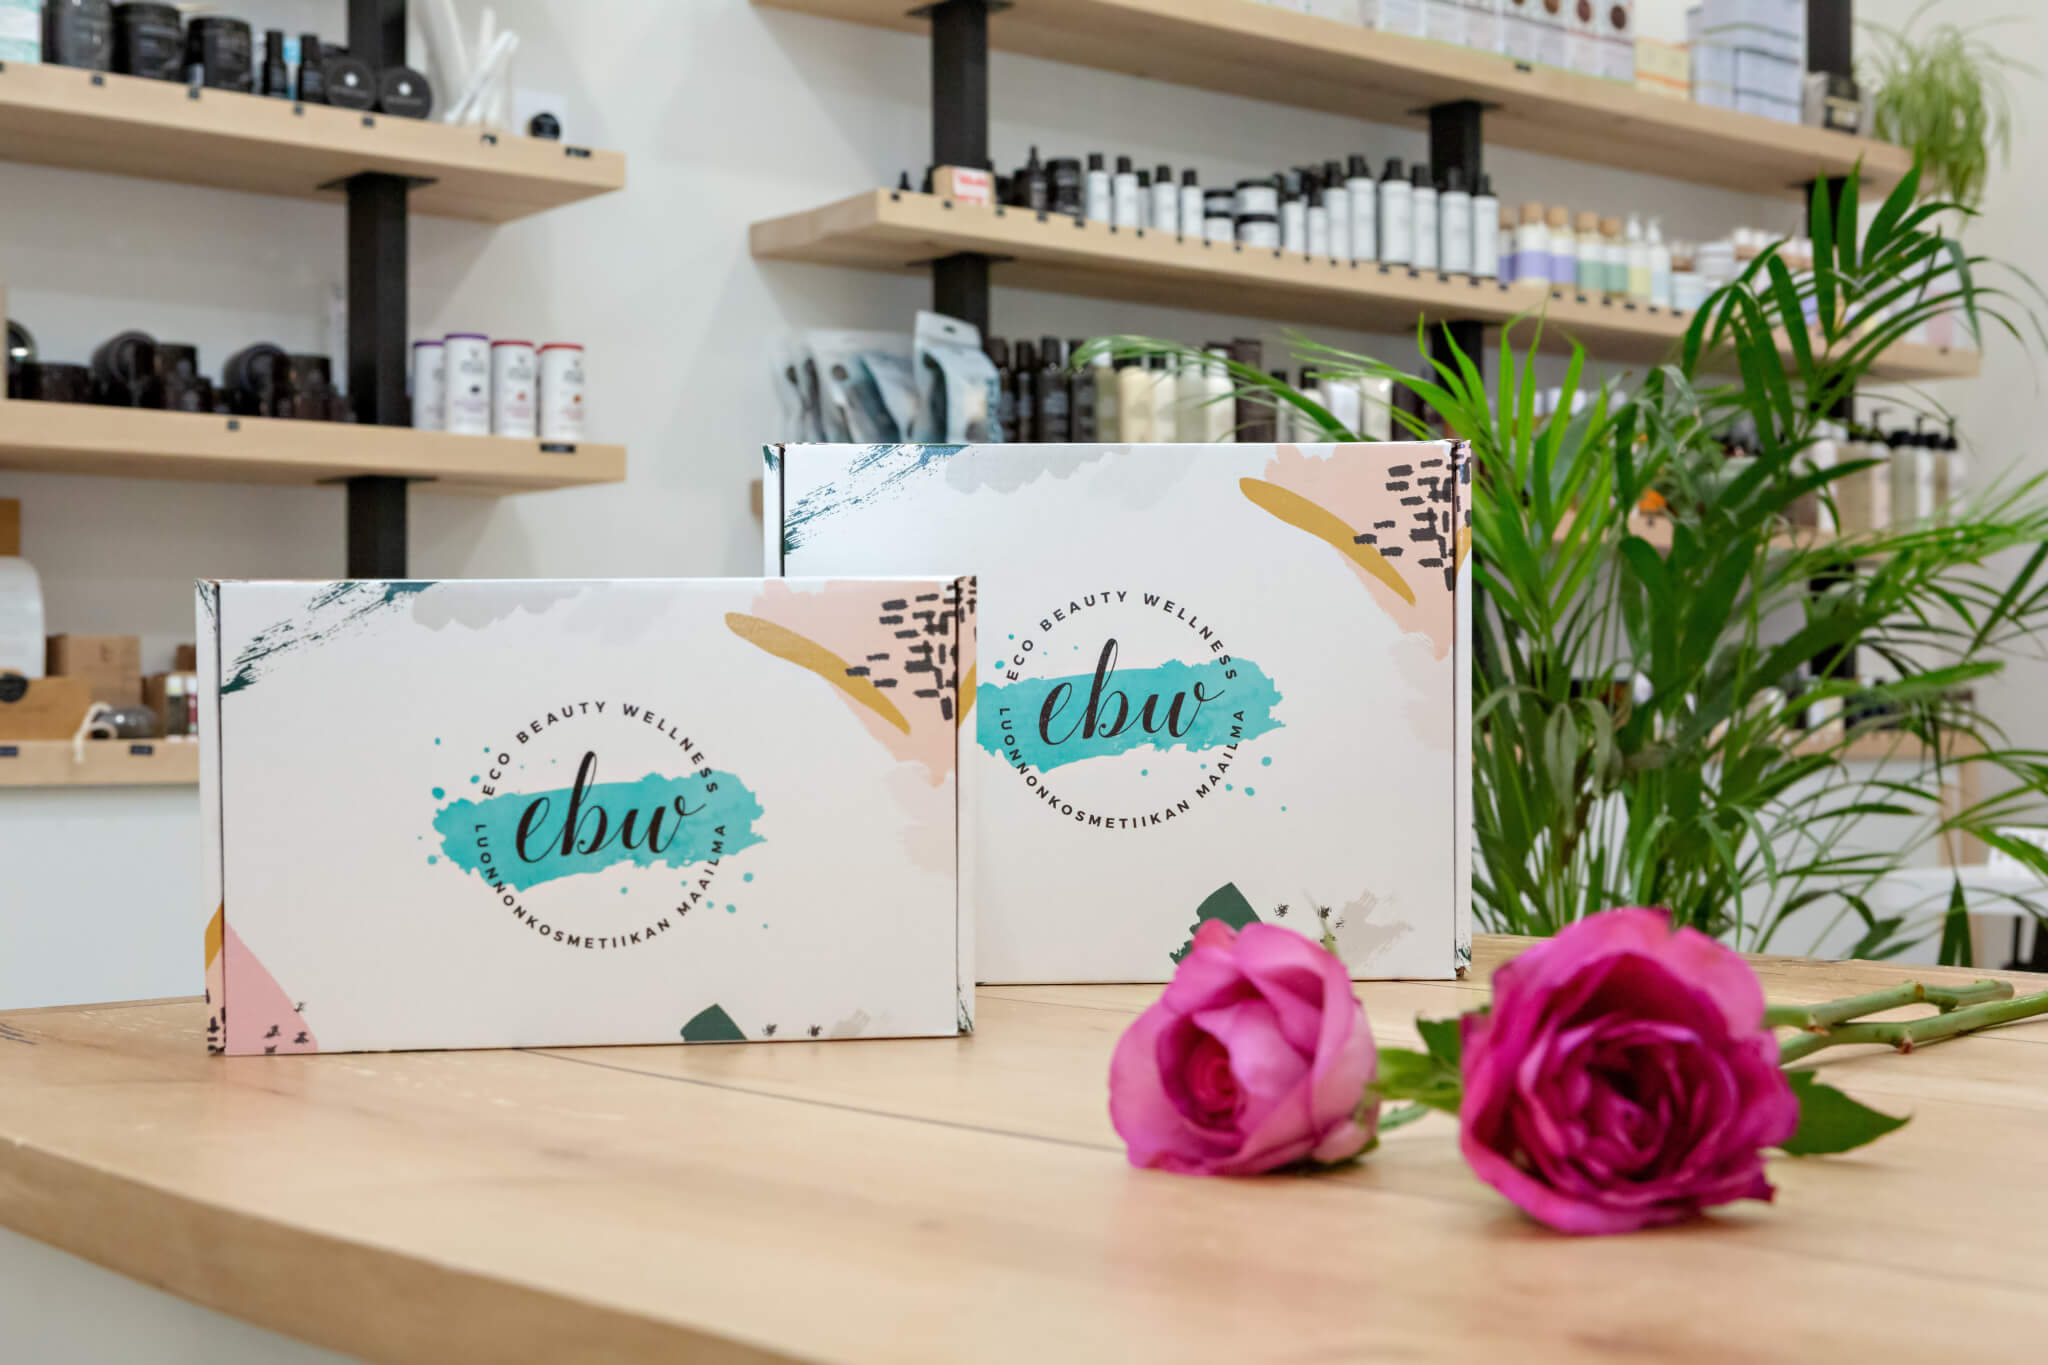 packaging of eco beauty wellness